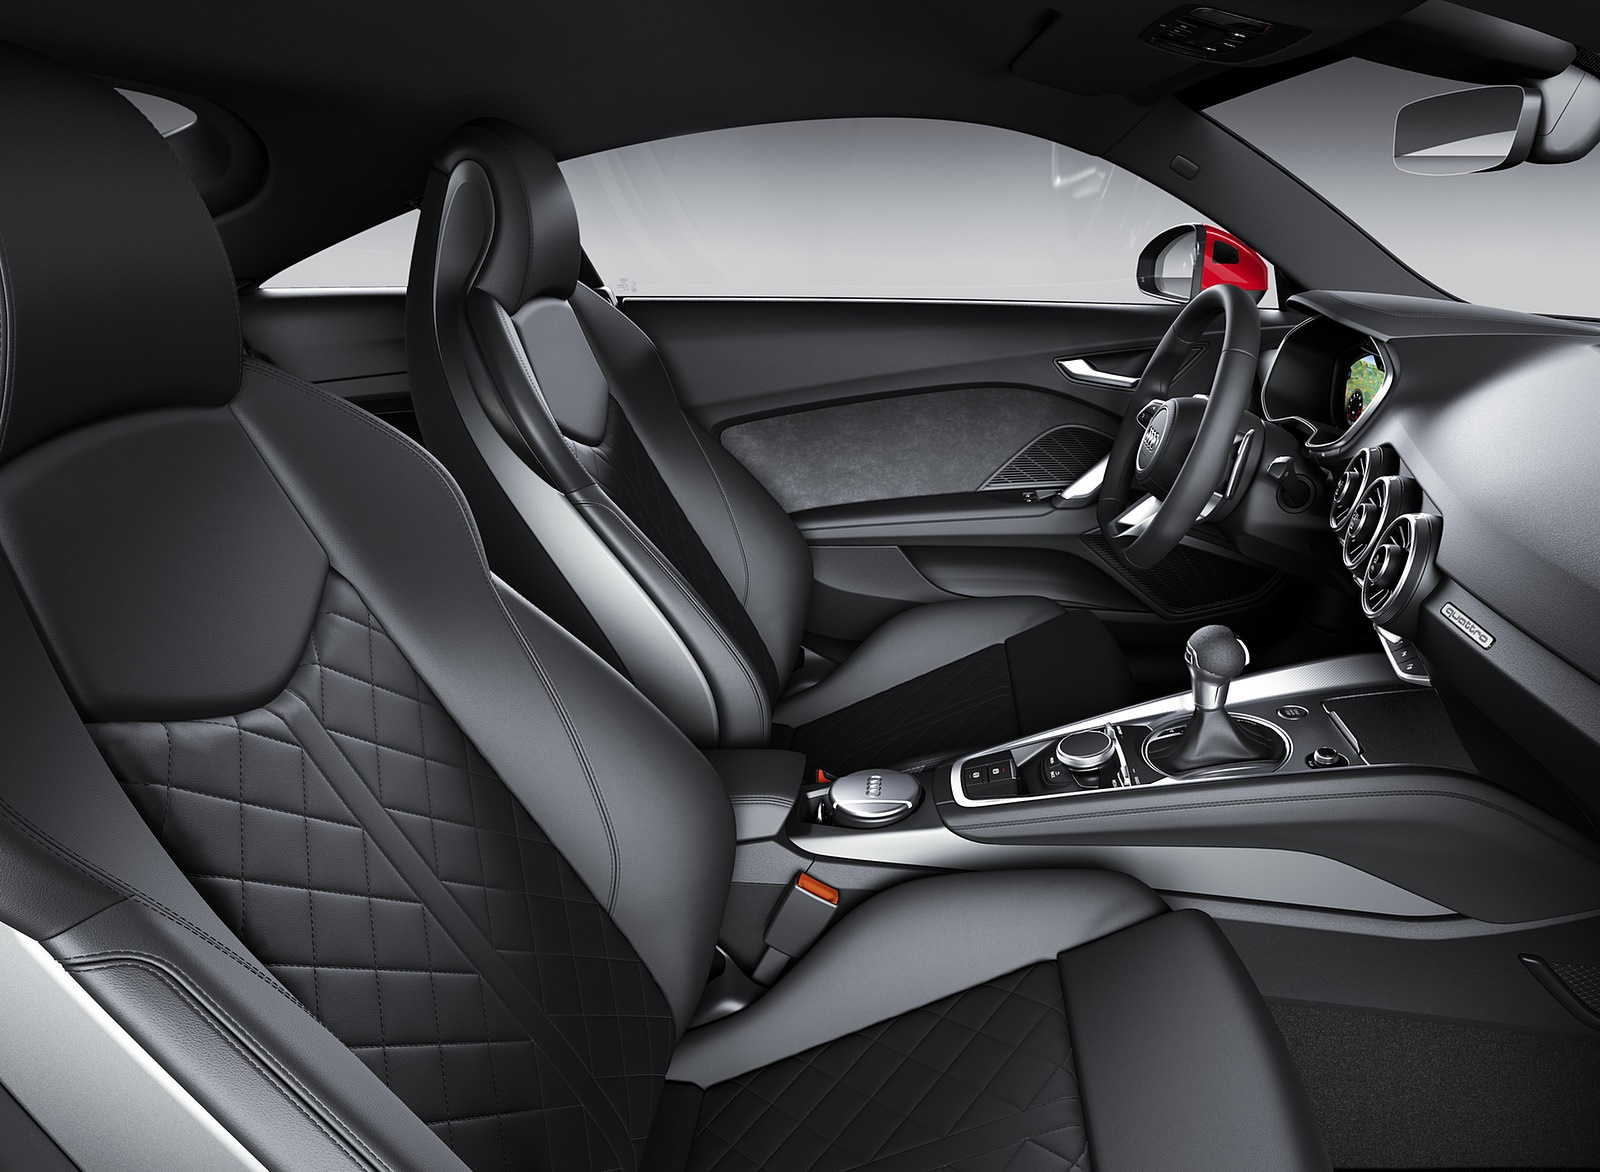 2019 Audi TT Interior Seats Wallpaper (12)